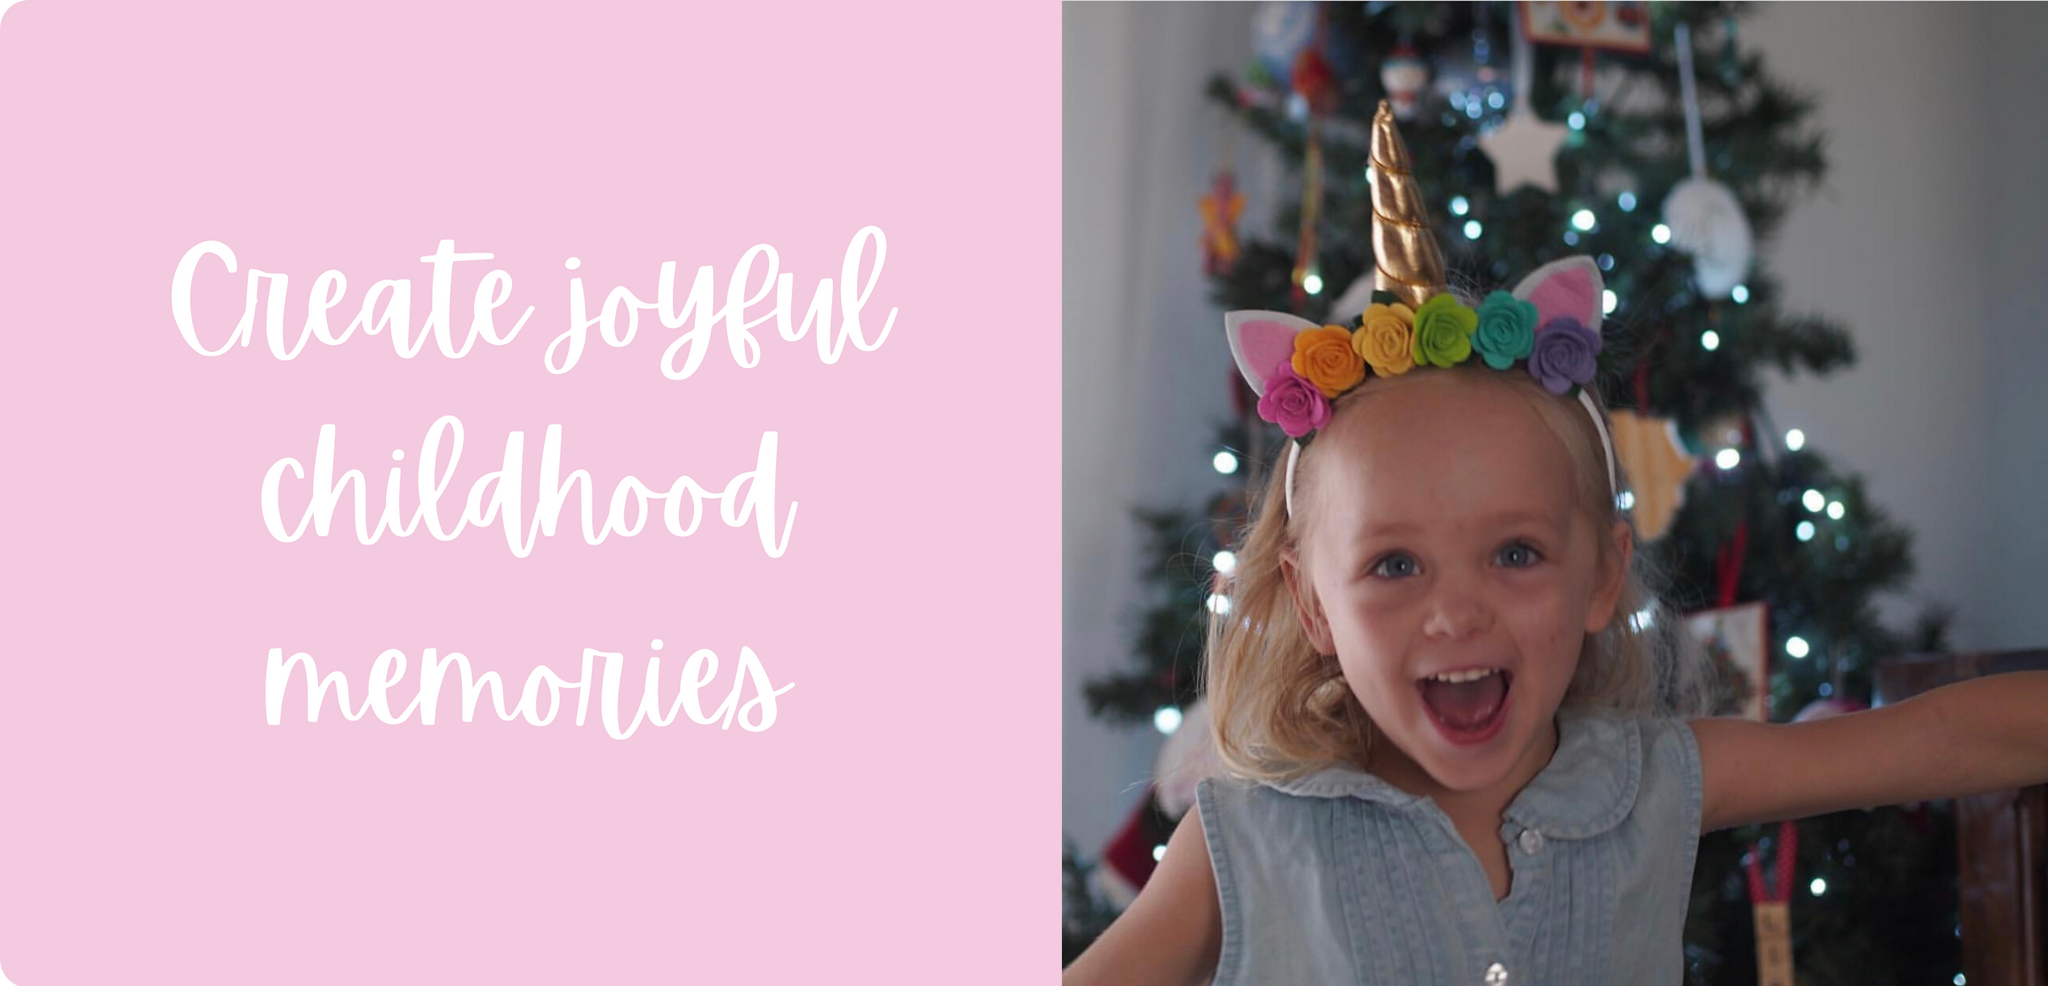 Create joyful childhood memories - Unicorns - Ponytails and Fairytales